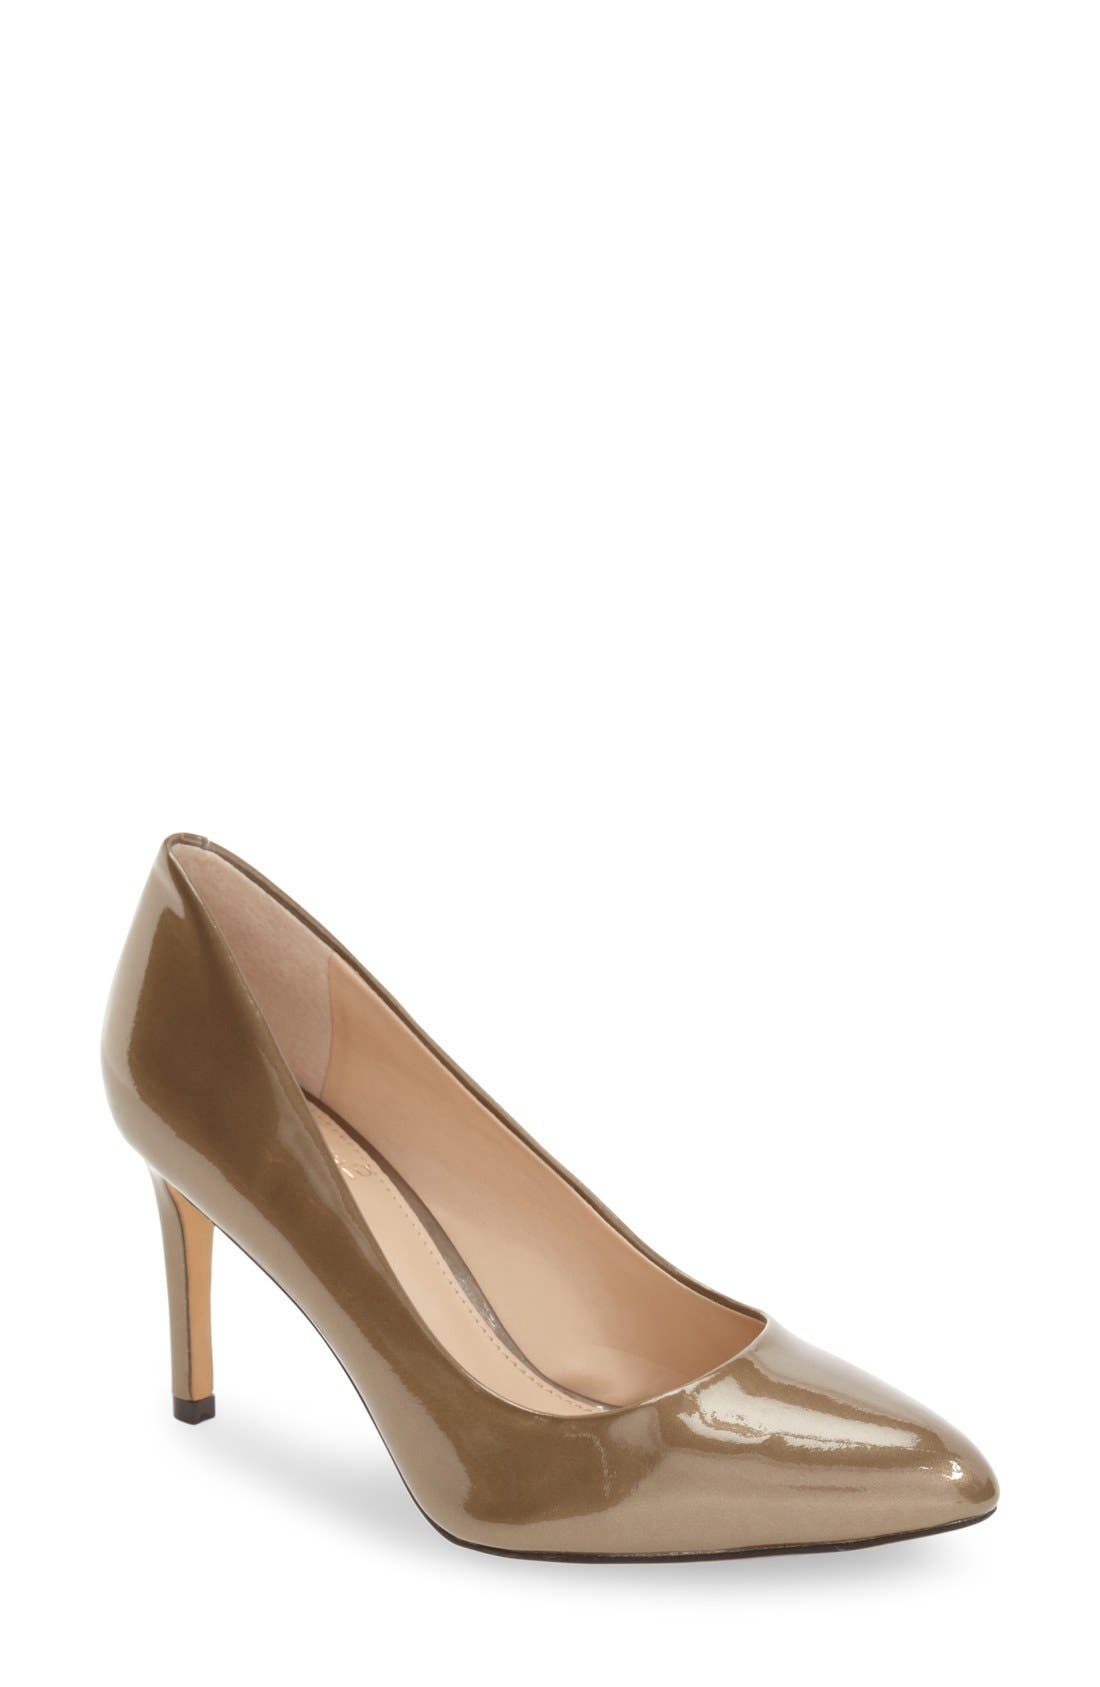 Alternate Image 1 Selected - Vince Camuto 'Langer' Almond Toe Pump (Women)